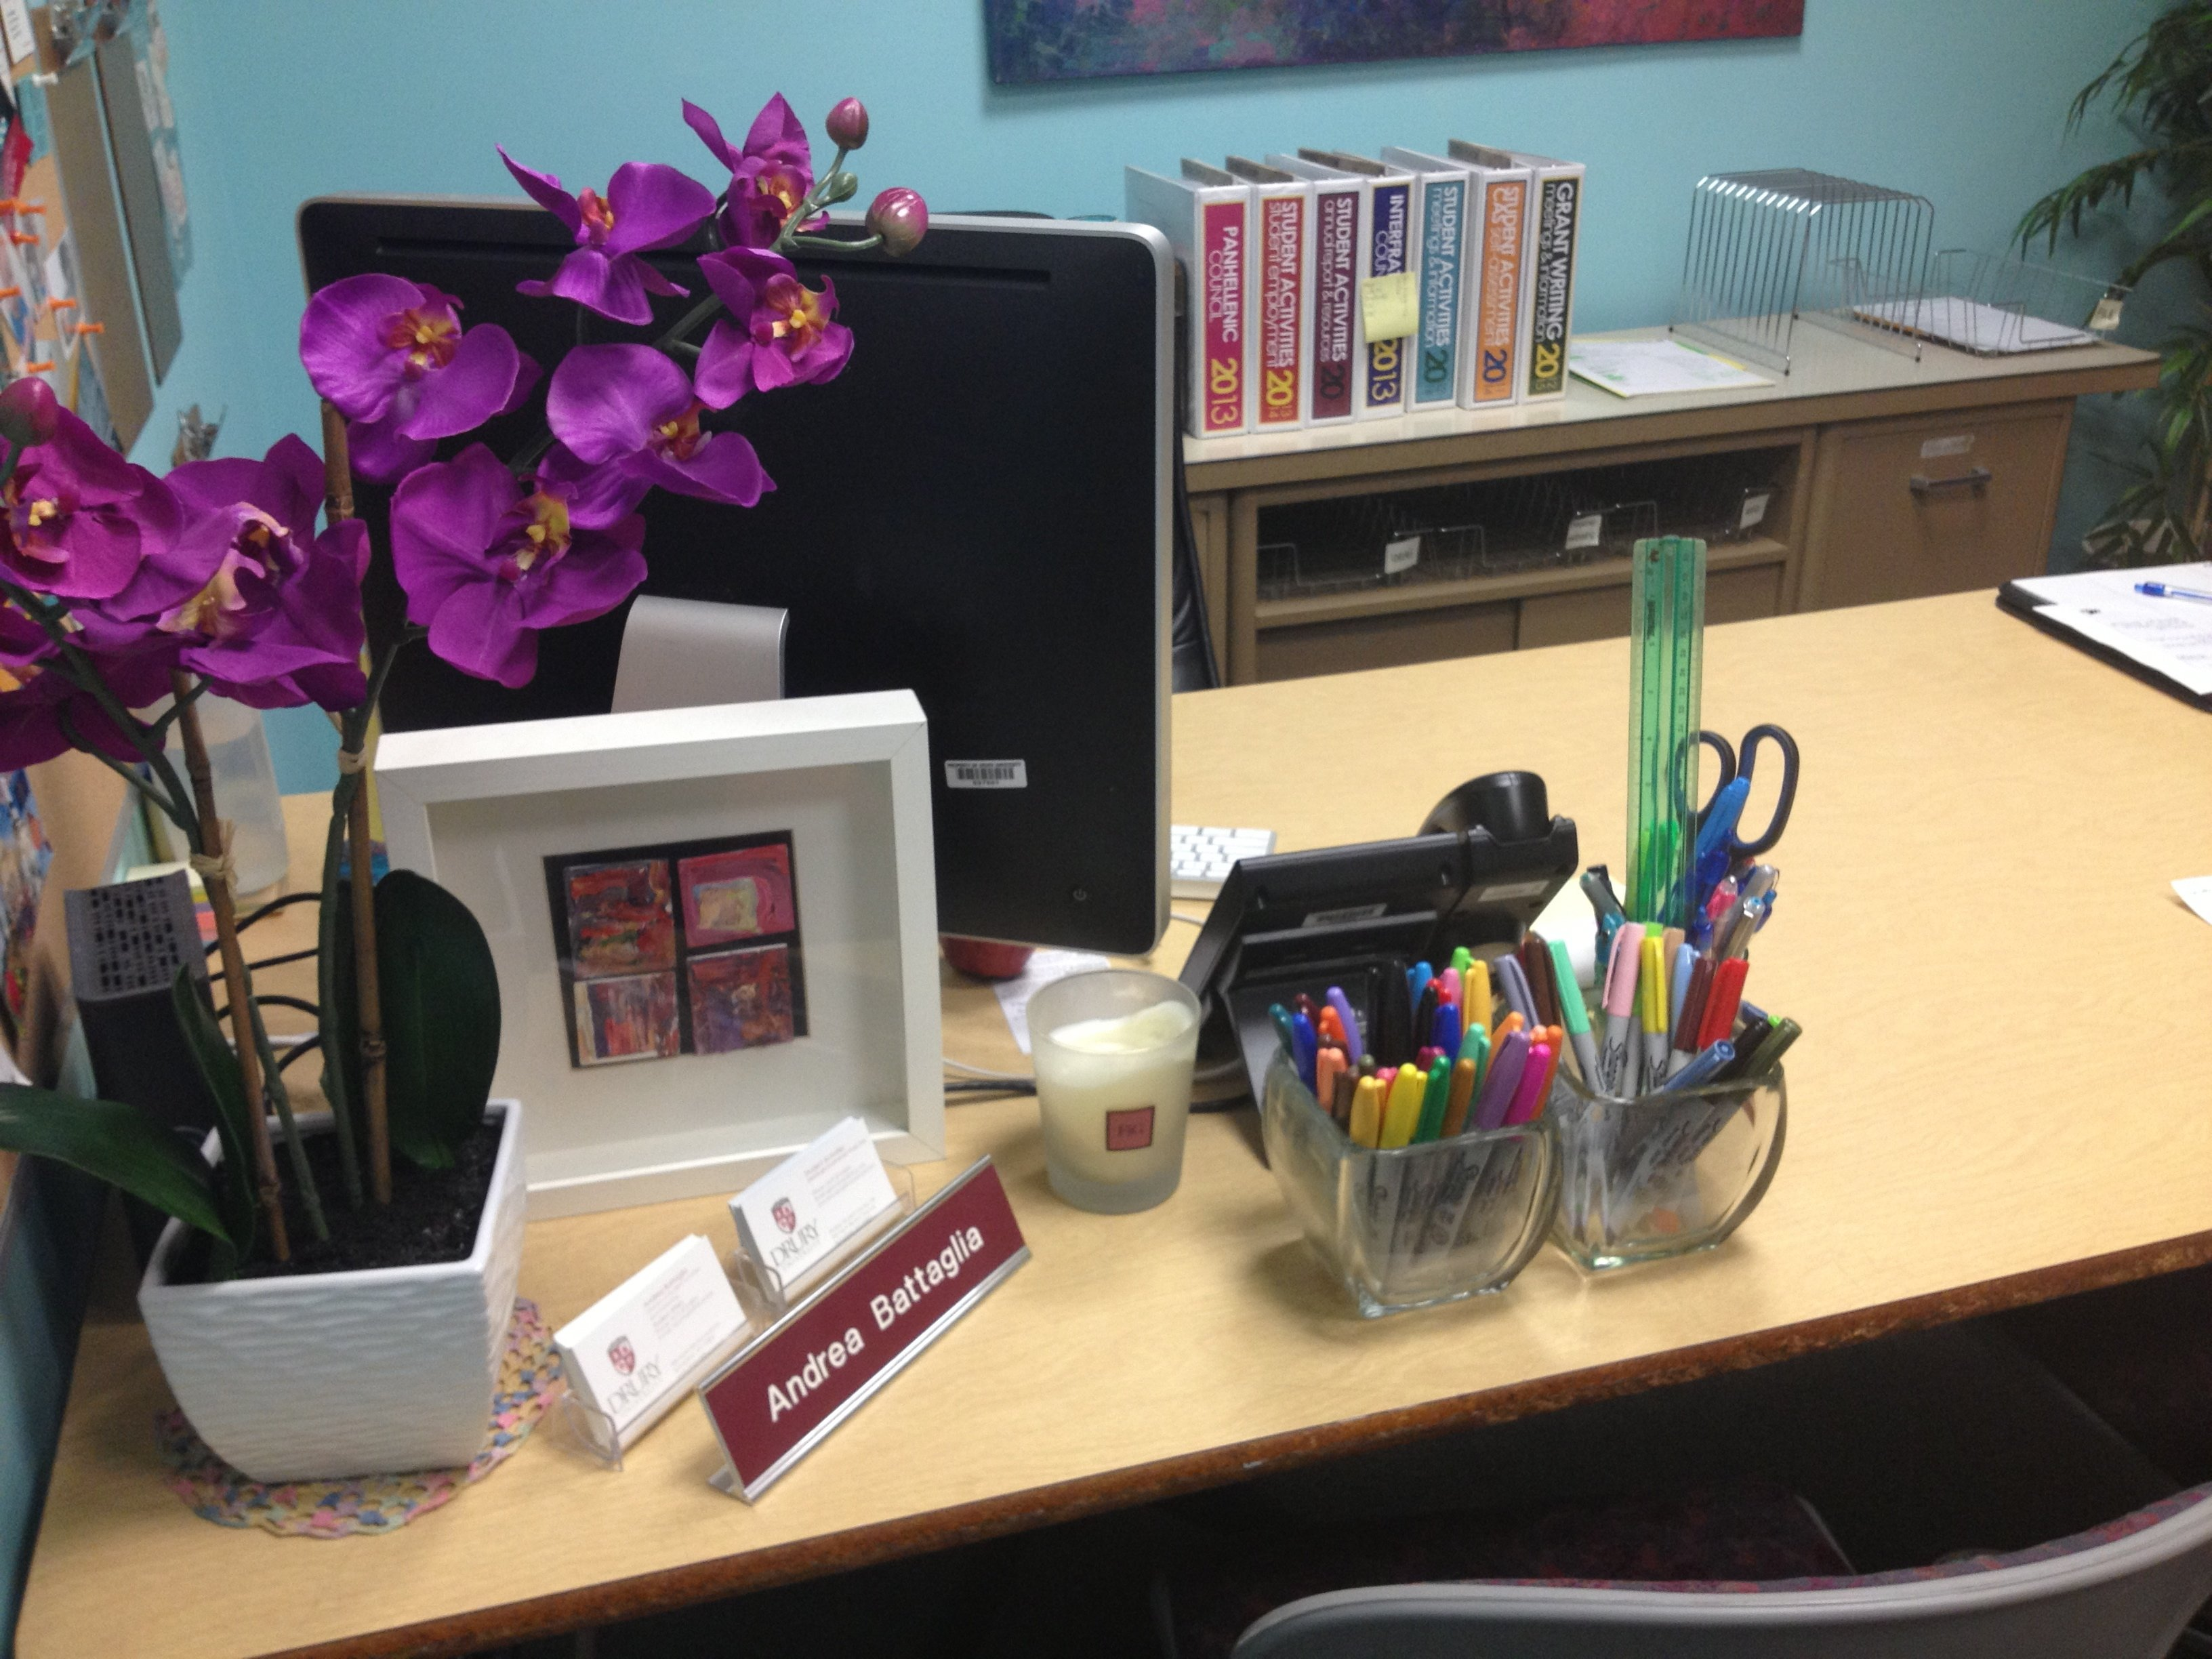 10 Most Popular Work From Home Ideas 2013 15 minute desk organization ideas andreabcreative 2020